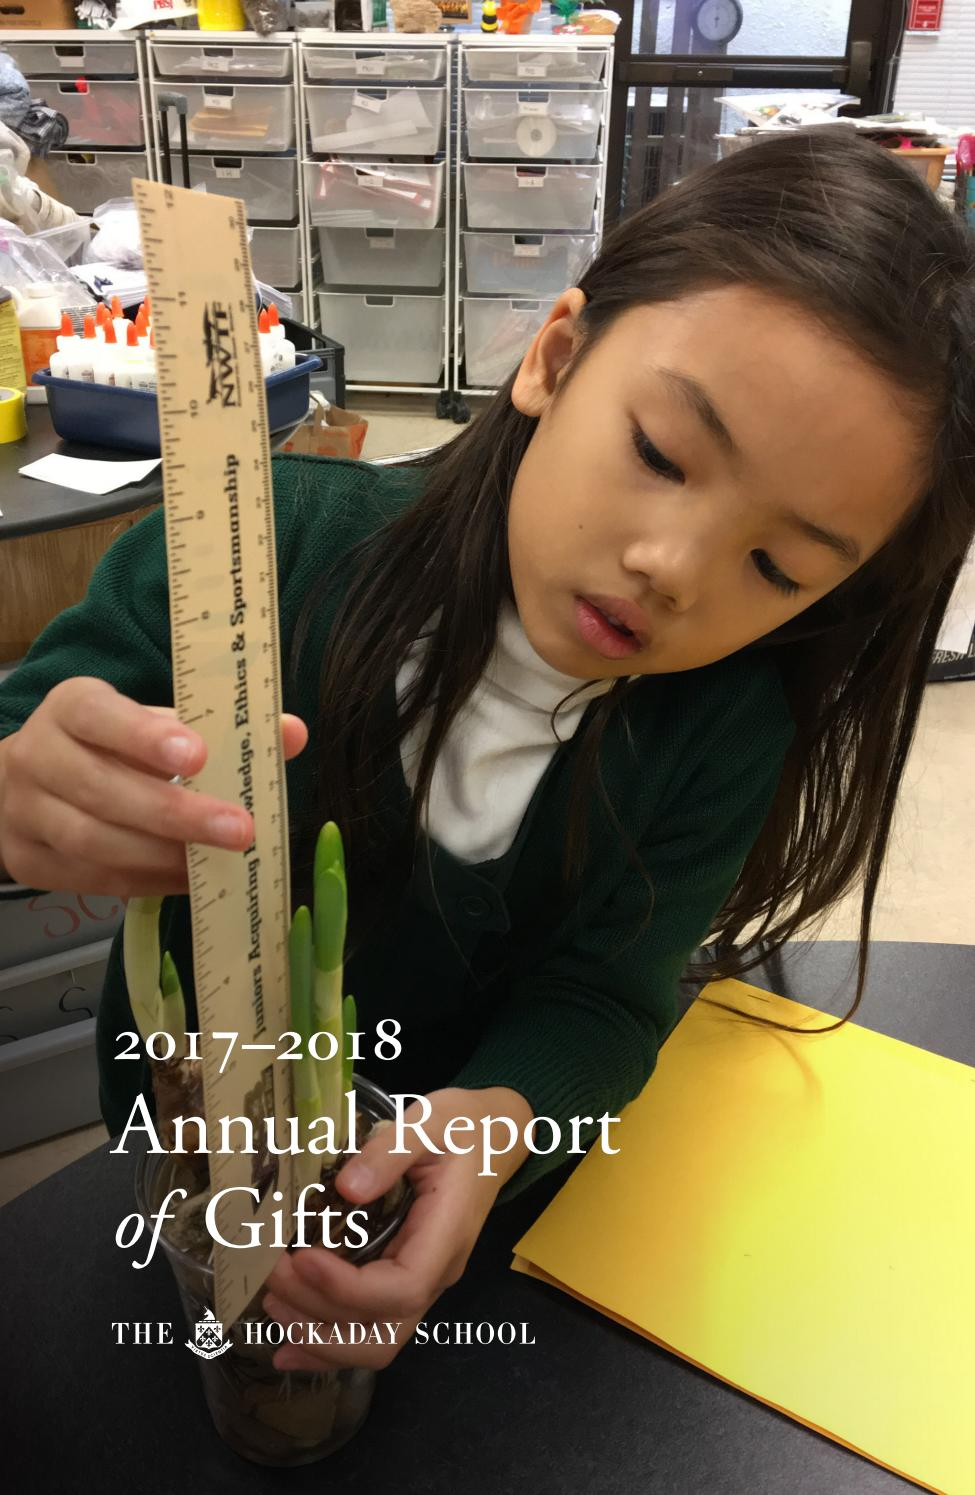 Annual Report 2017-2018 by The Hockaday School - issuu